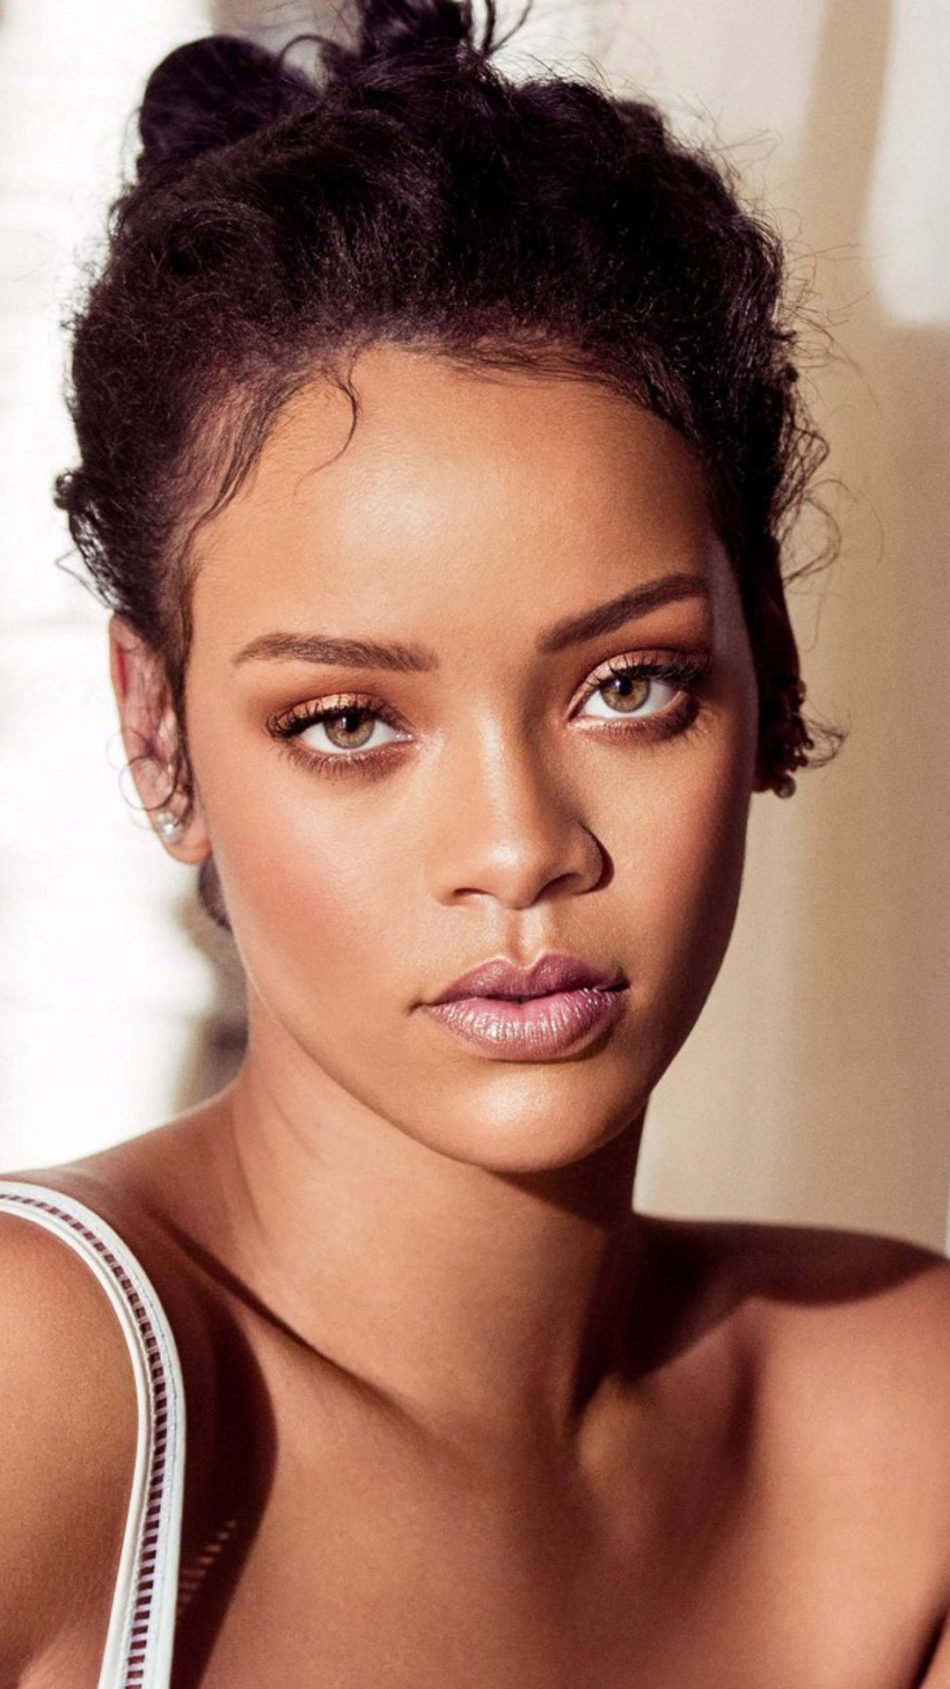 Background Wallpaper Quotes Download Rihanna 2018 Free Pure 4k Ultra Hd Mobile Wallpaper